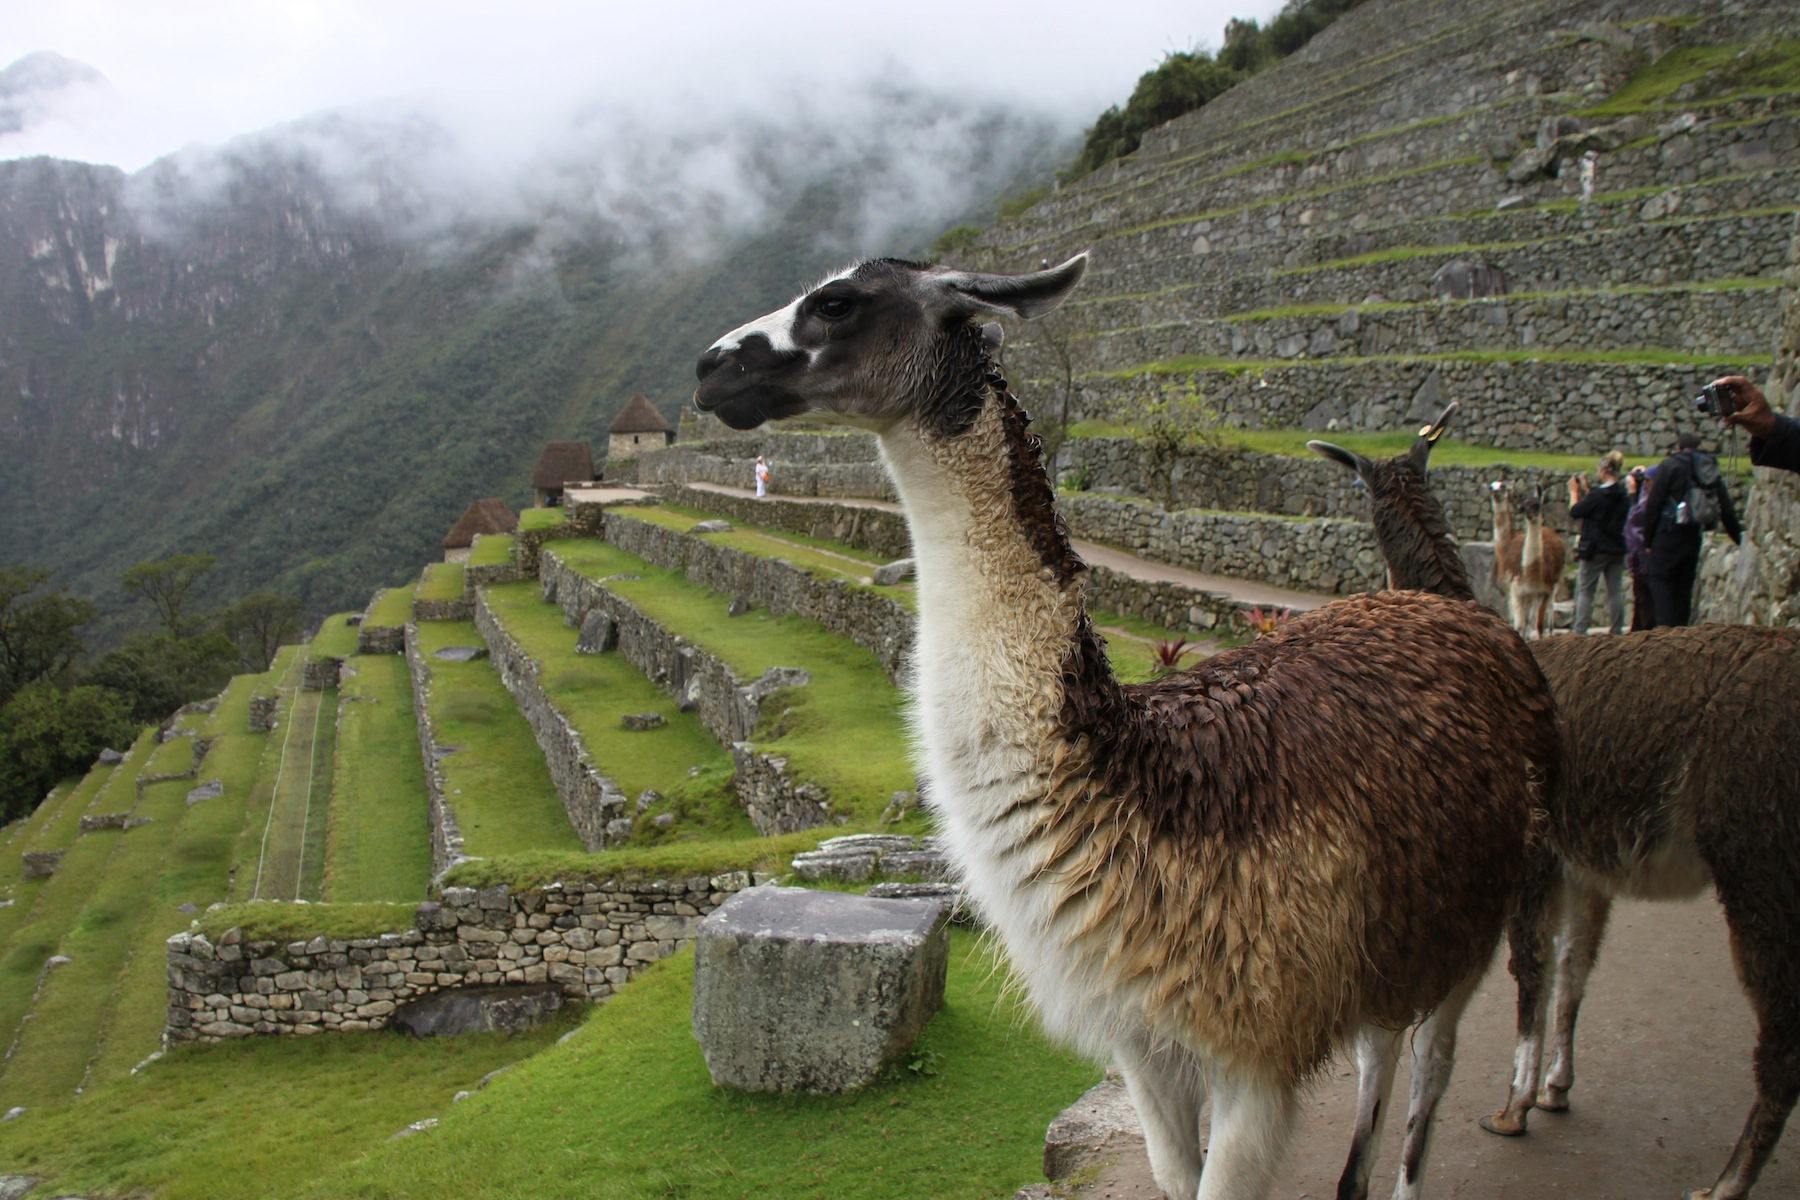 Peru and its Incan culture